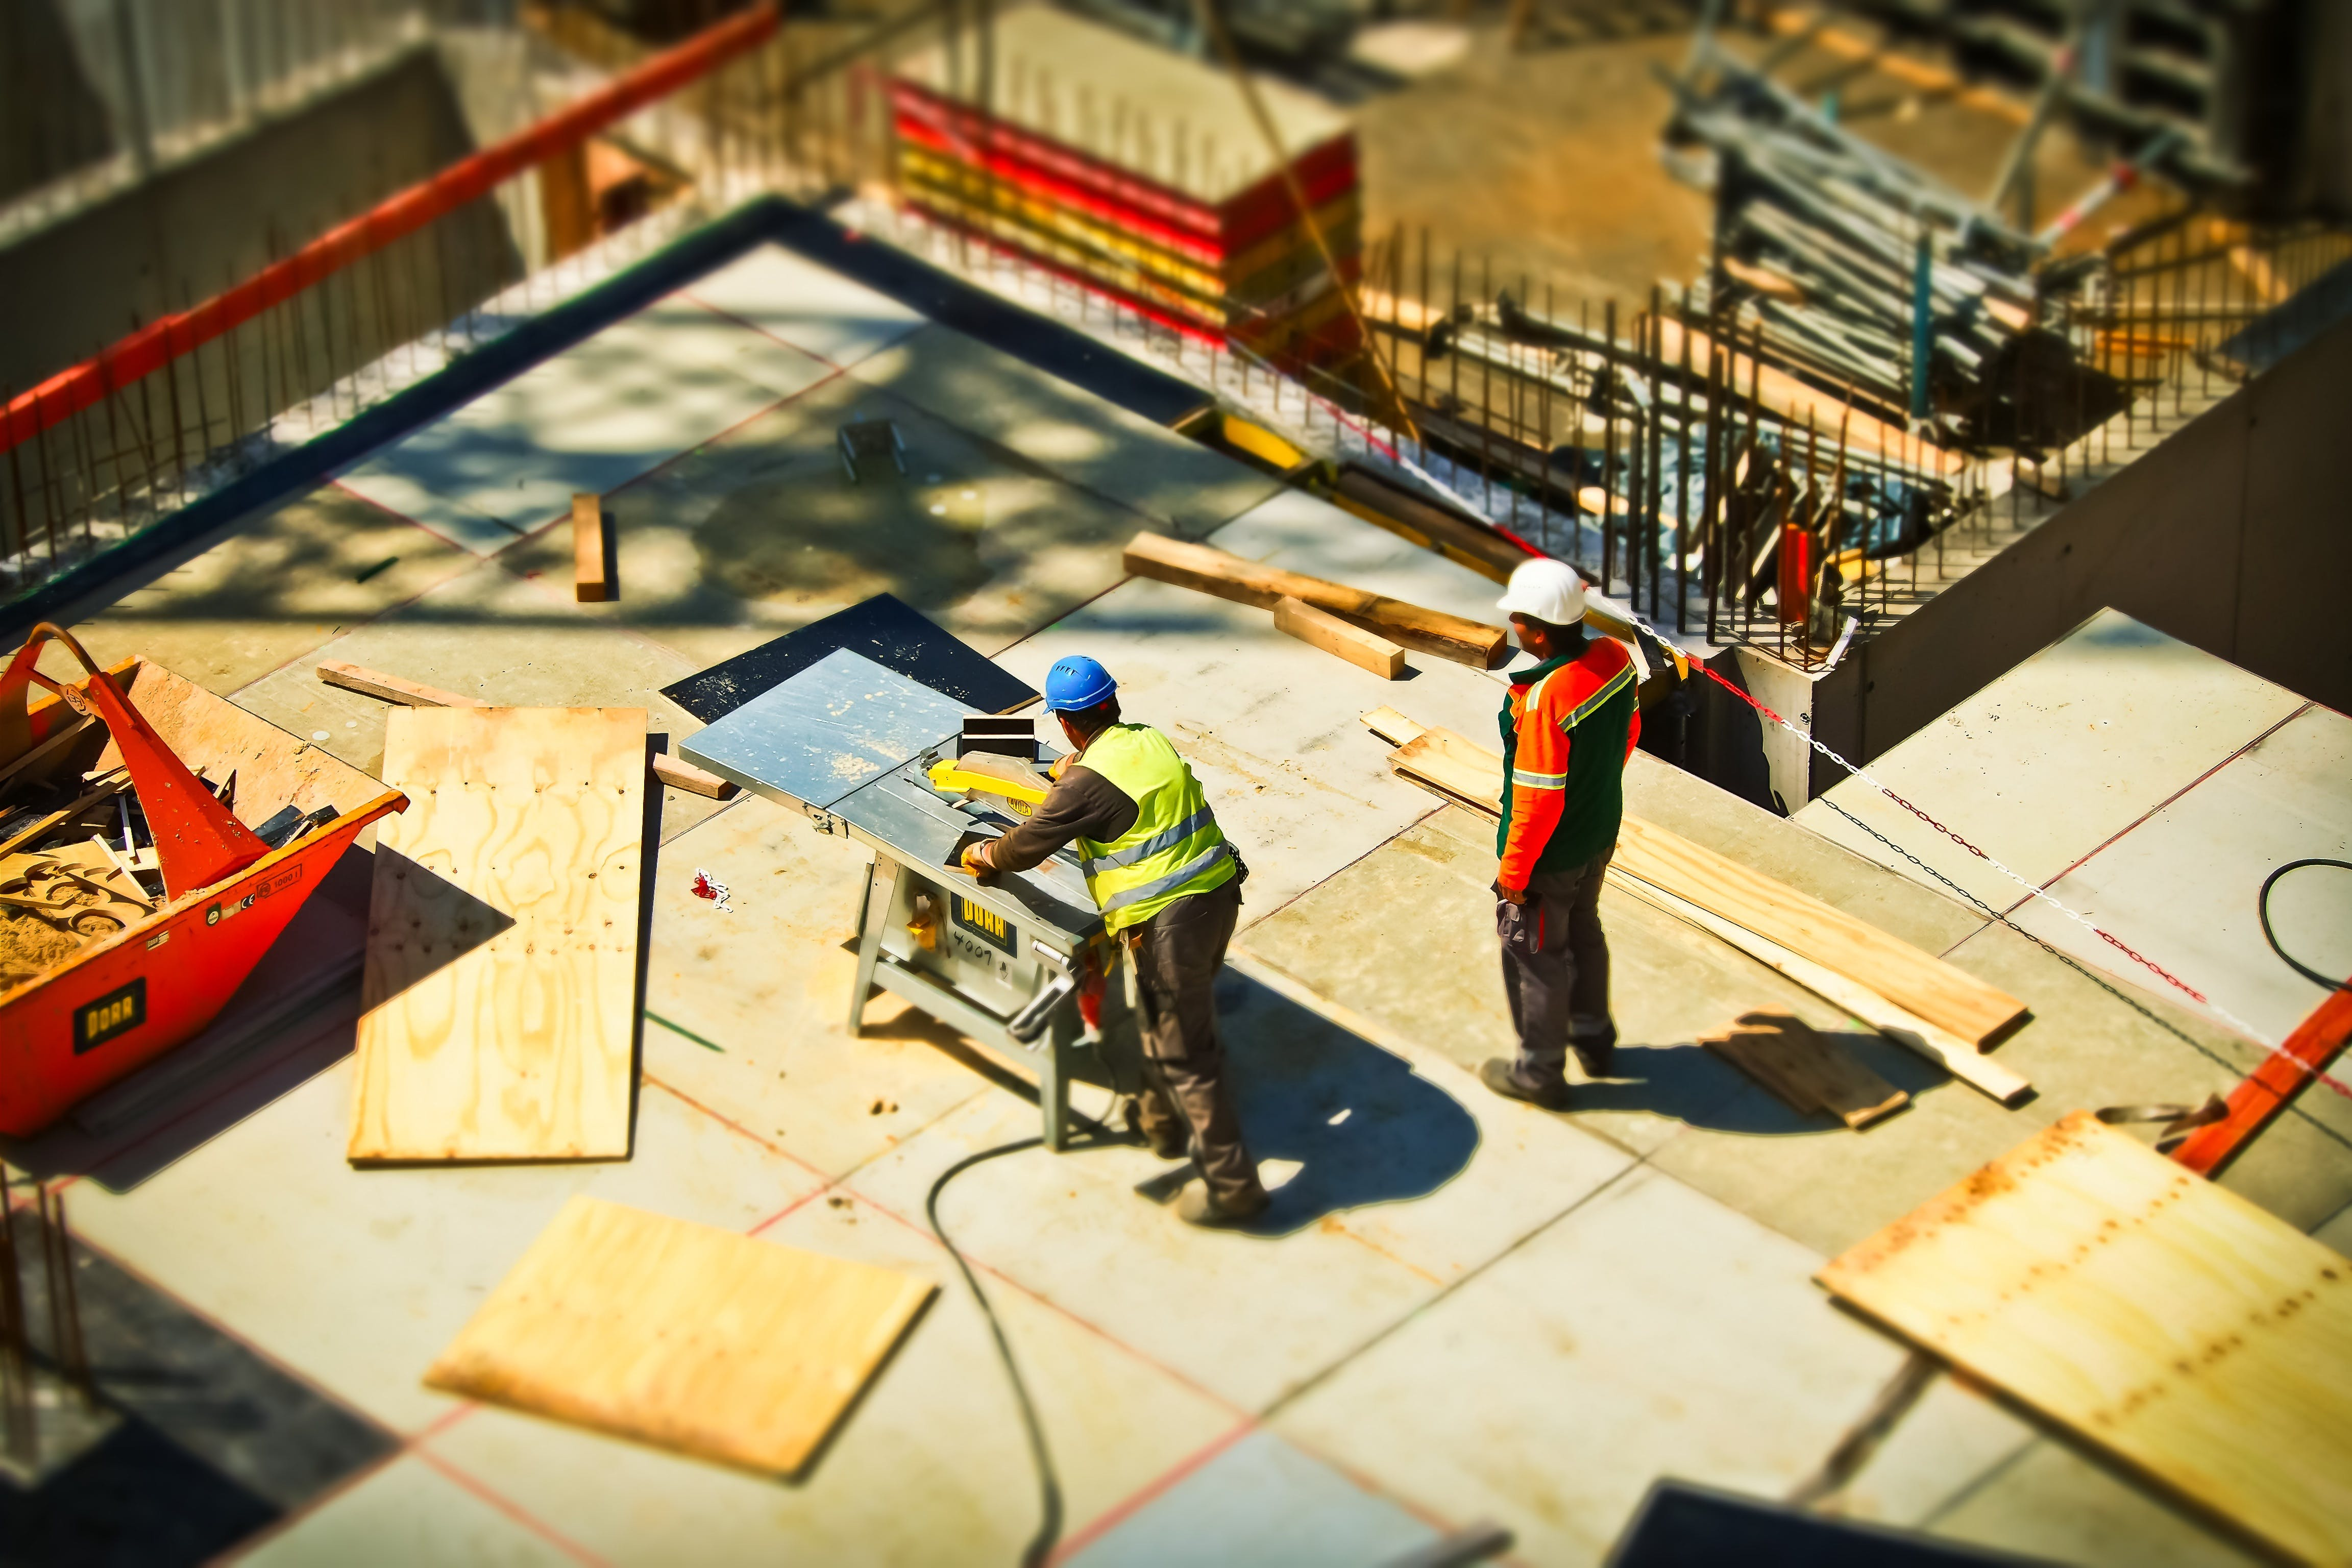 2 Man on Construction Site during Daytime